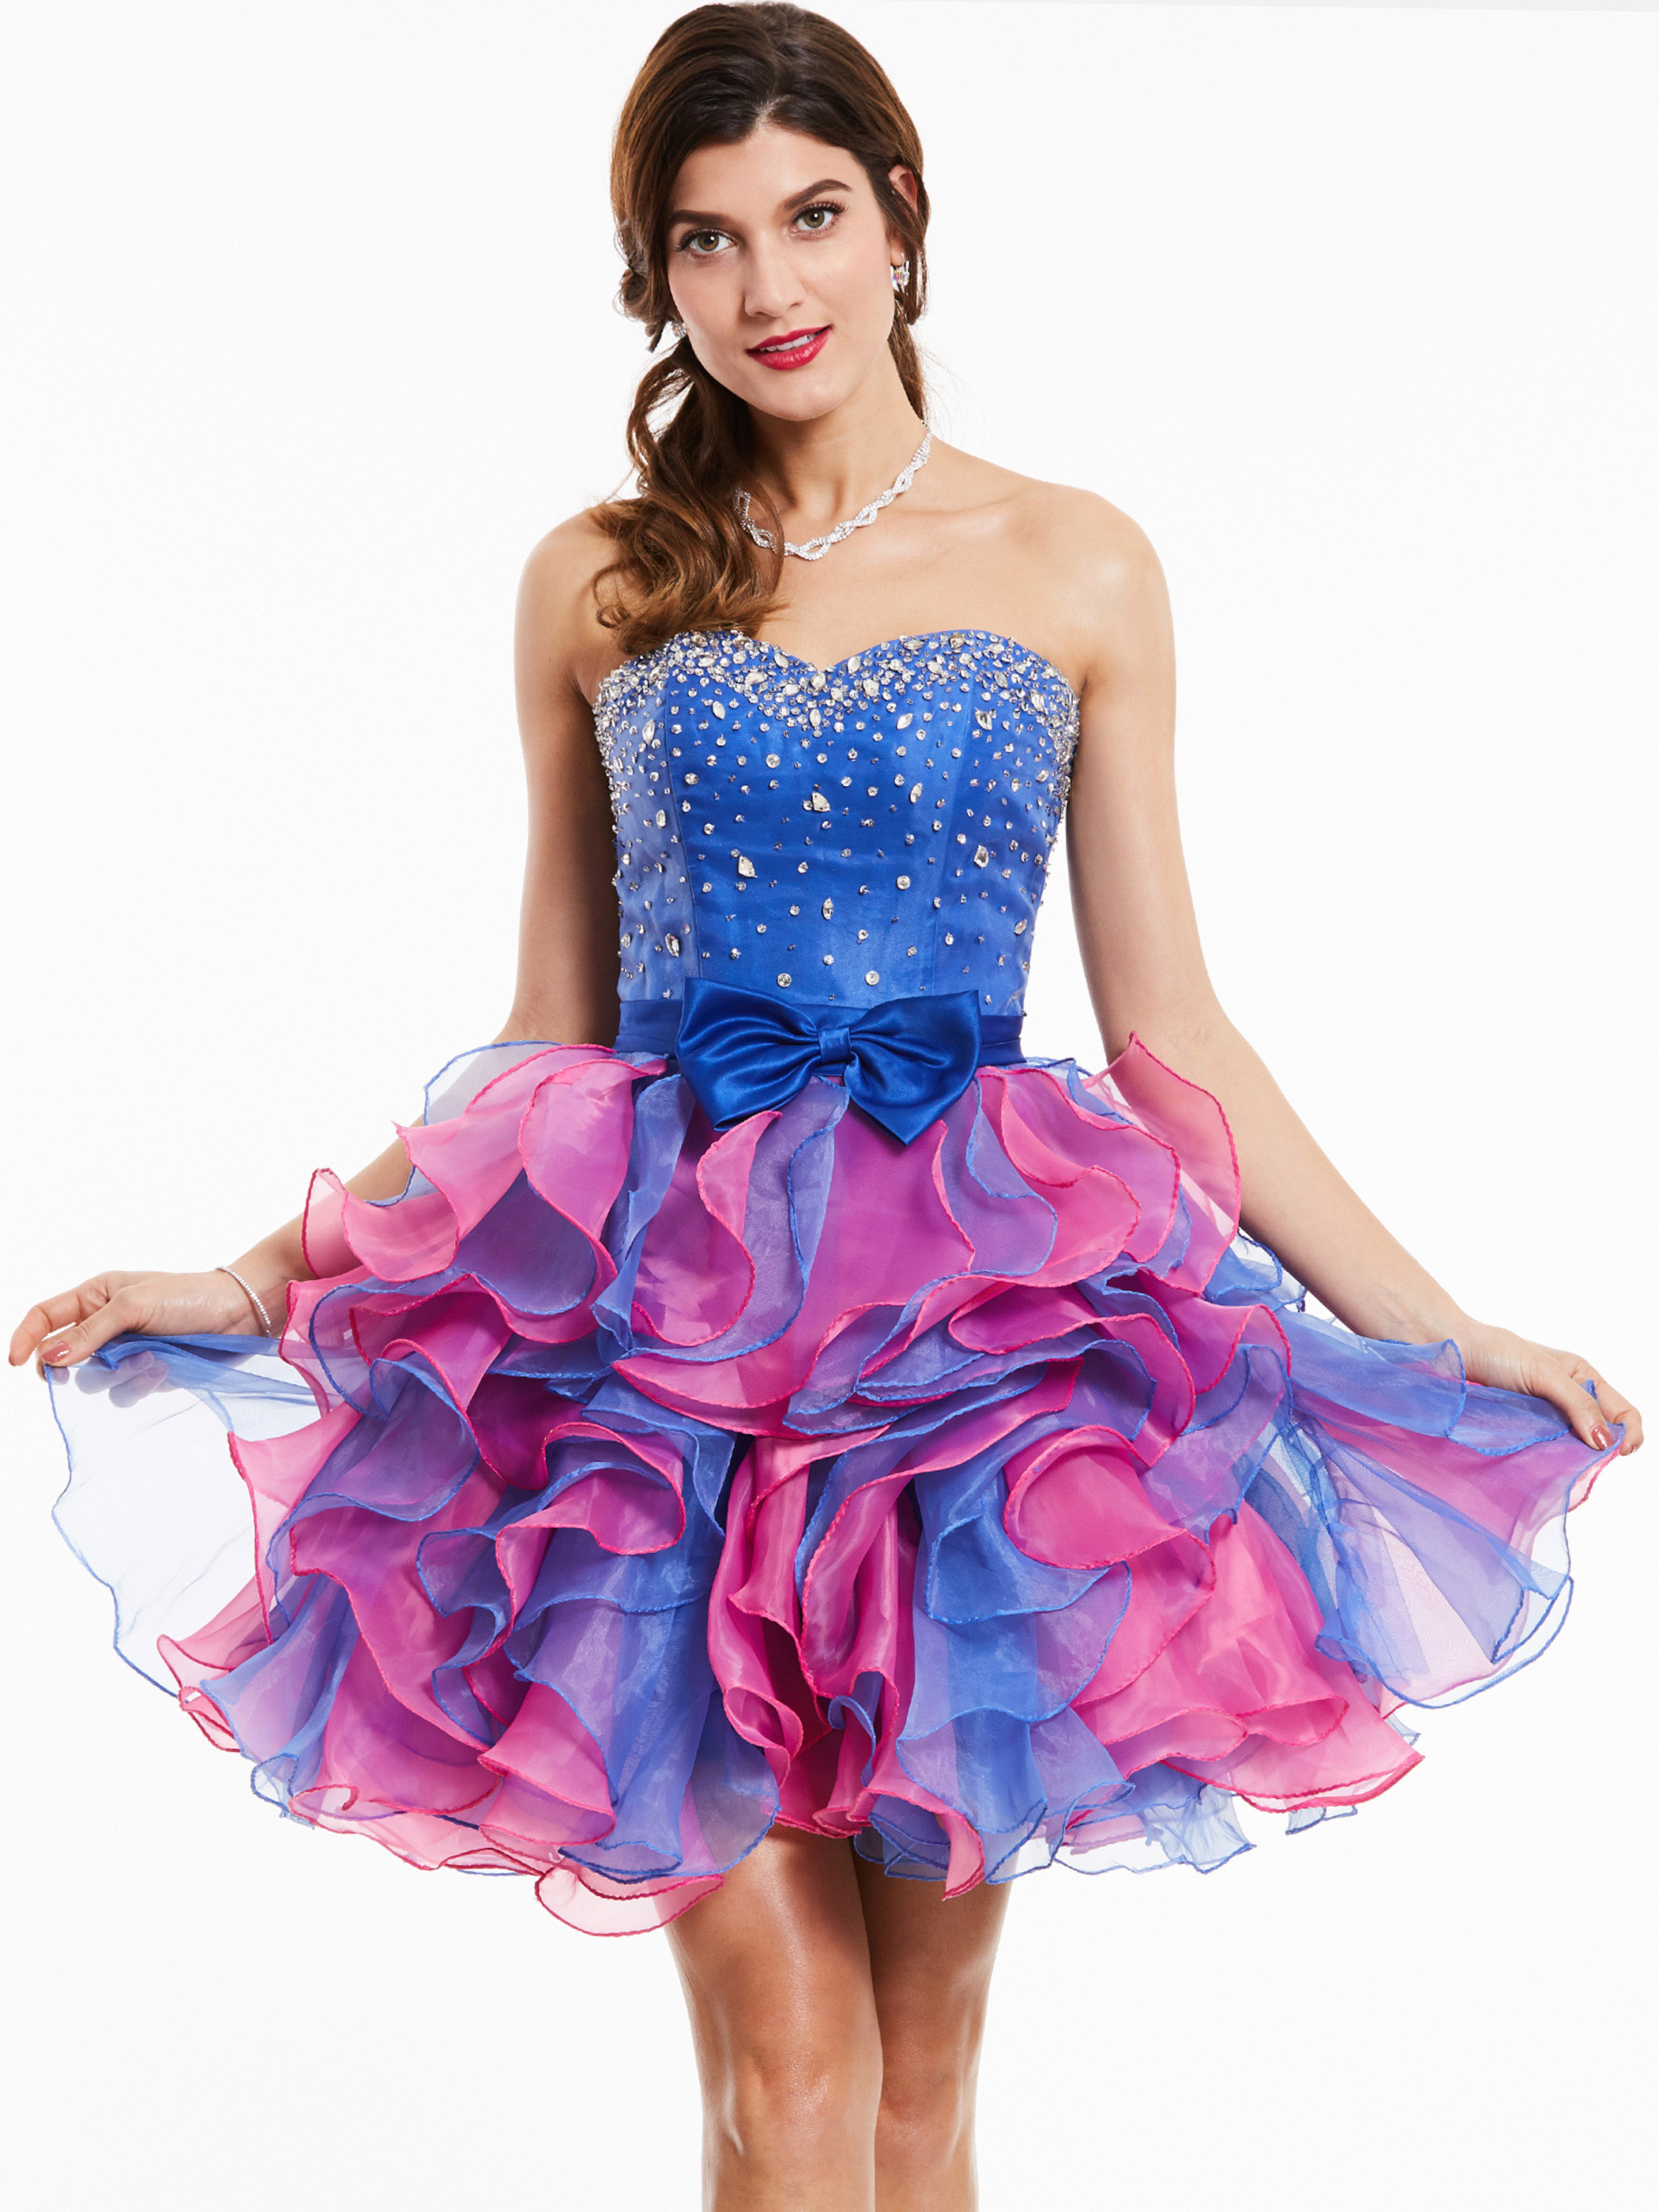 Dressv Strapless Cocktail Dress Royal Blue Sleeveless Beaded Bowknot Above Knee Ball Gown Women Party Short Cocktail Dresses